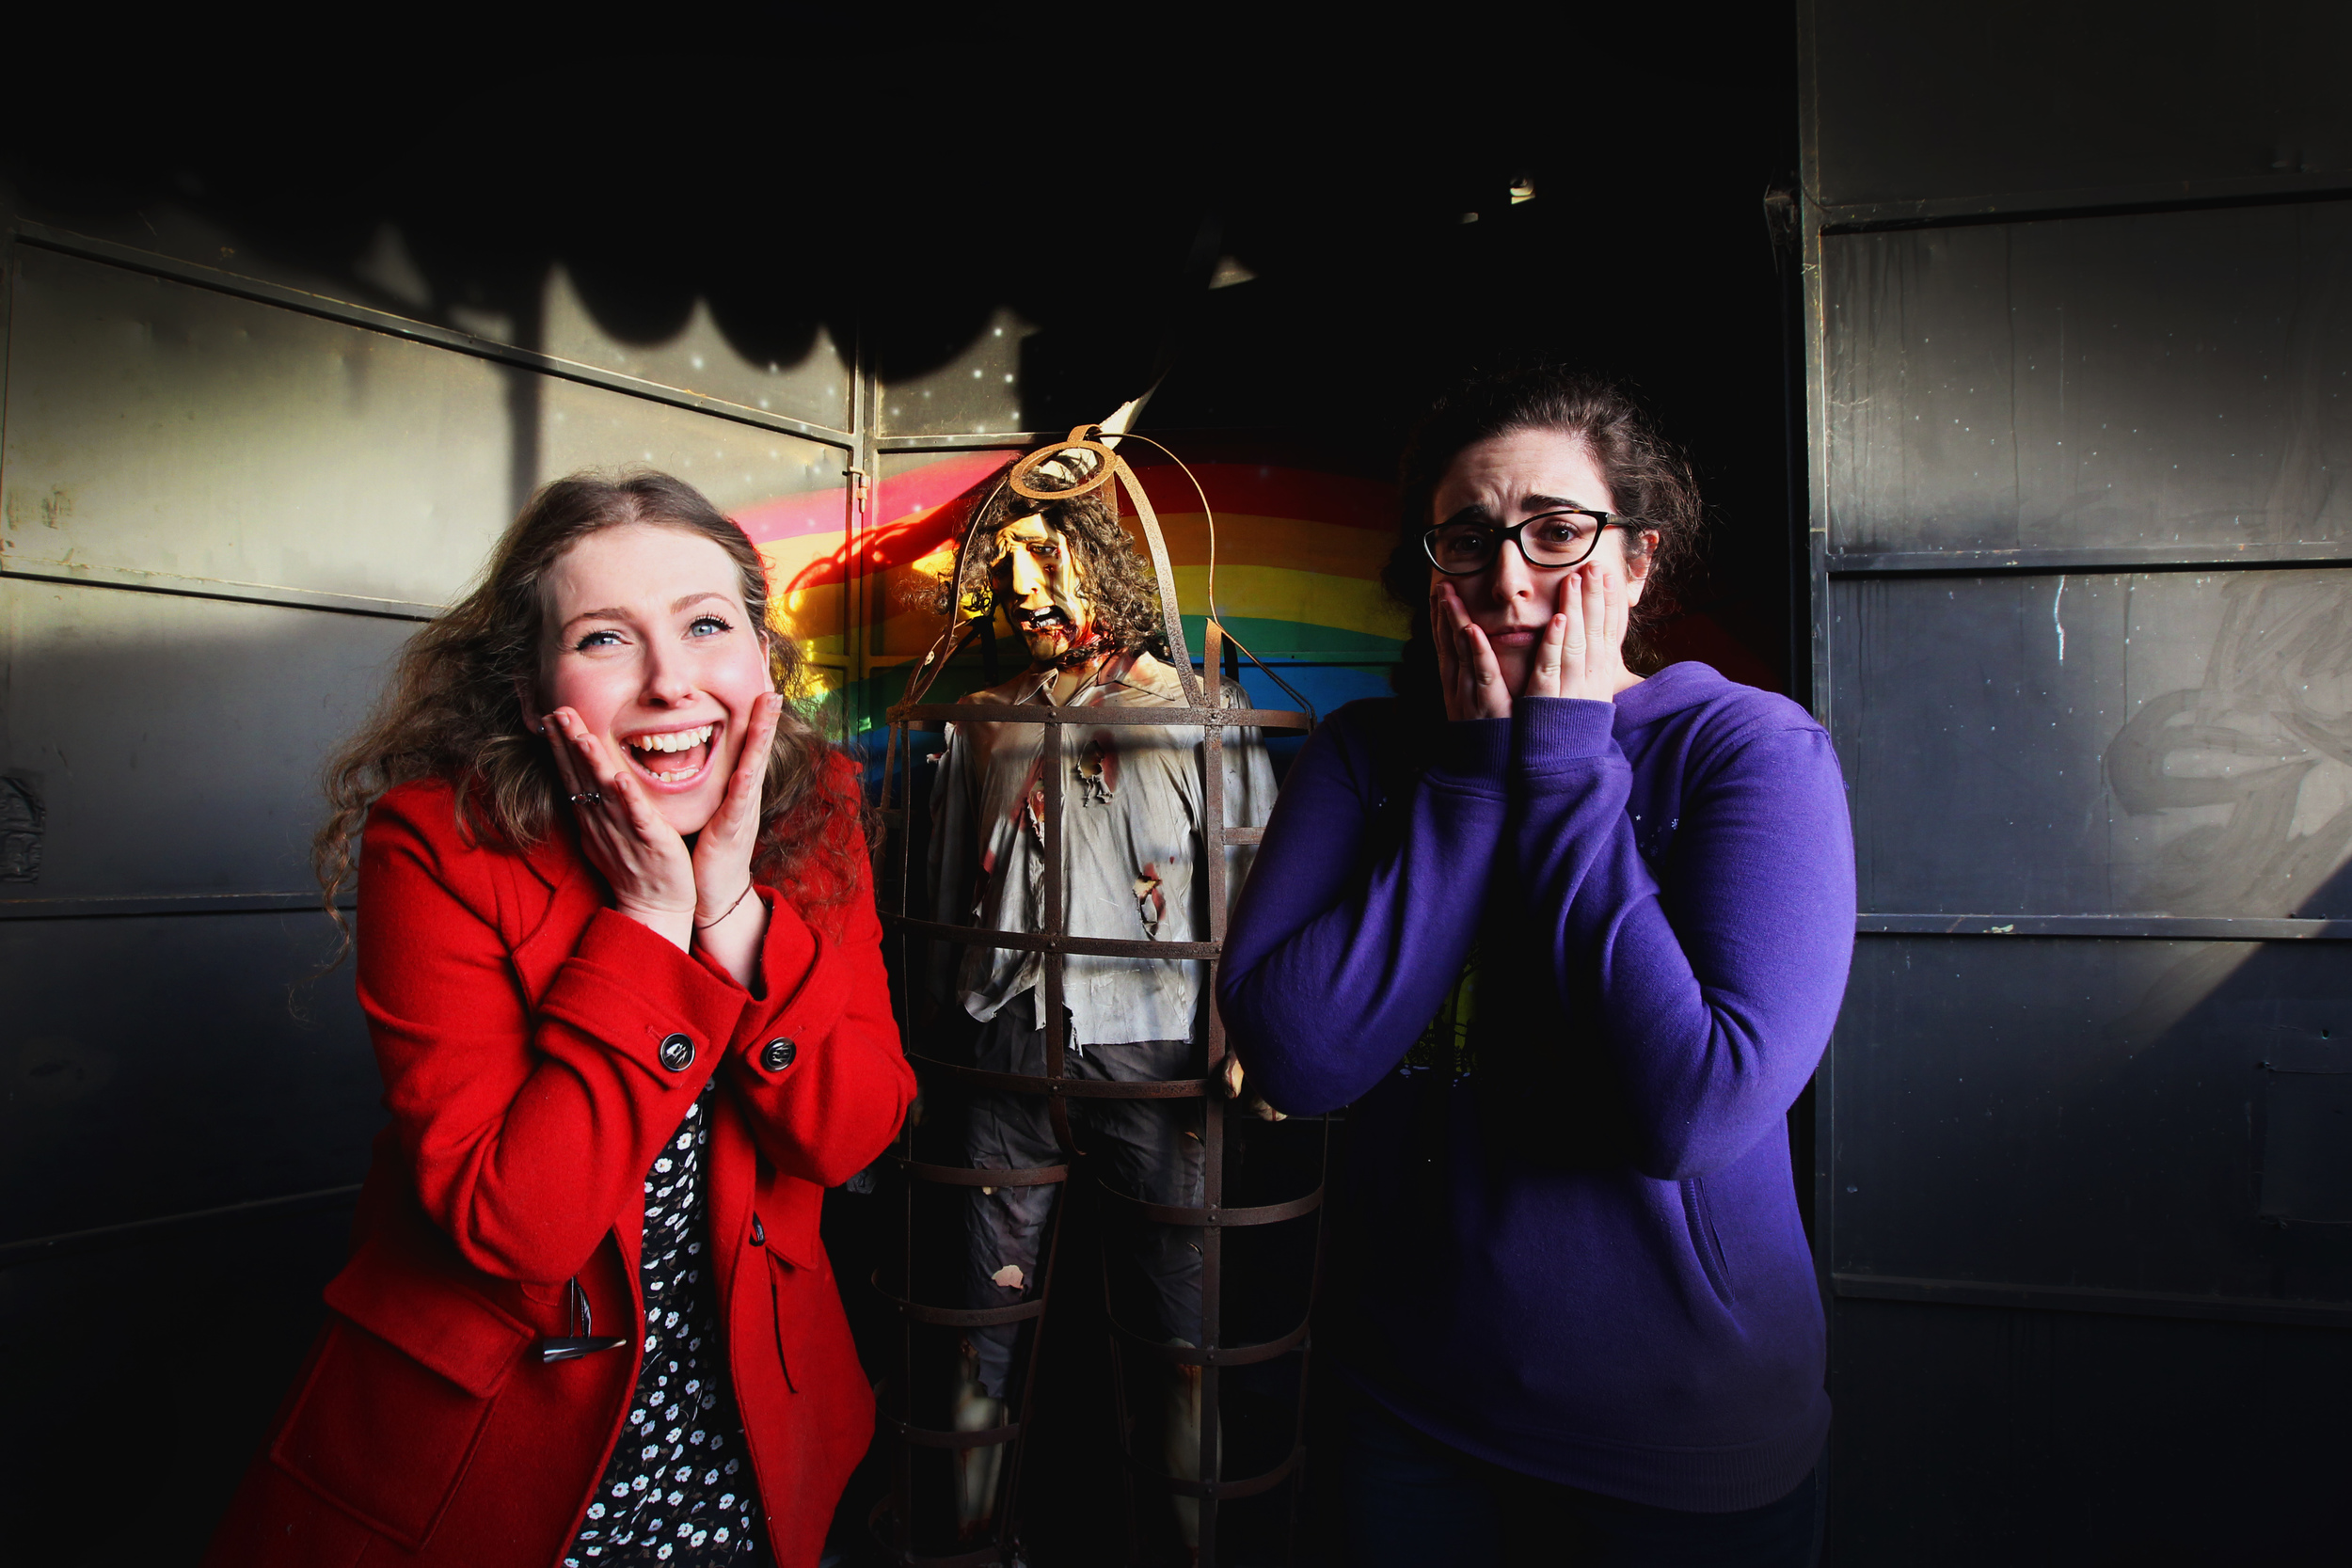 Organisers Brittany D'Chong and Natalie Wadwell of the Winter Wonderland arts festival held at Adventure Land in Edmonson Park. Picture: Simon Bennett (Bennett Photography)